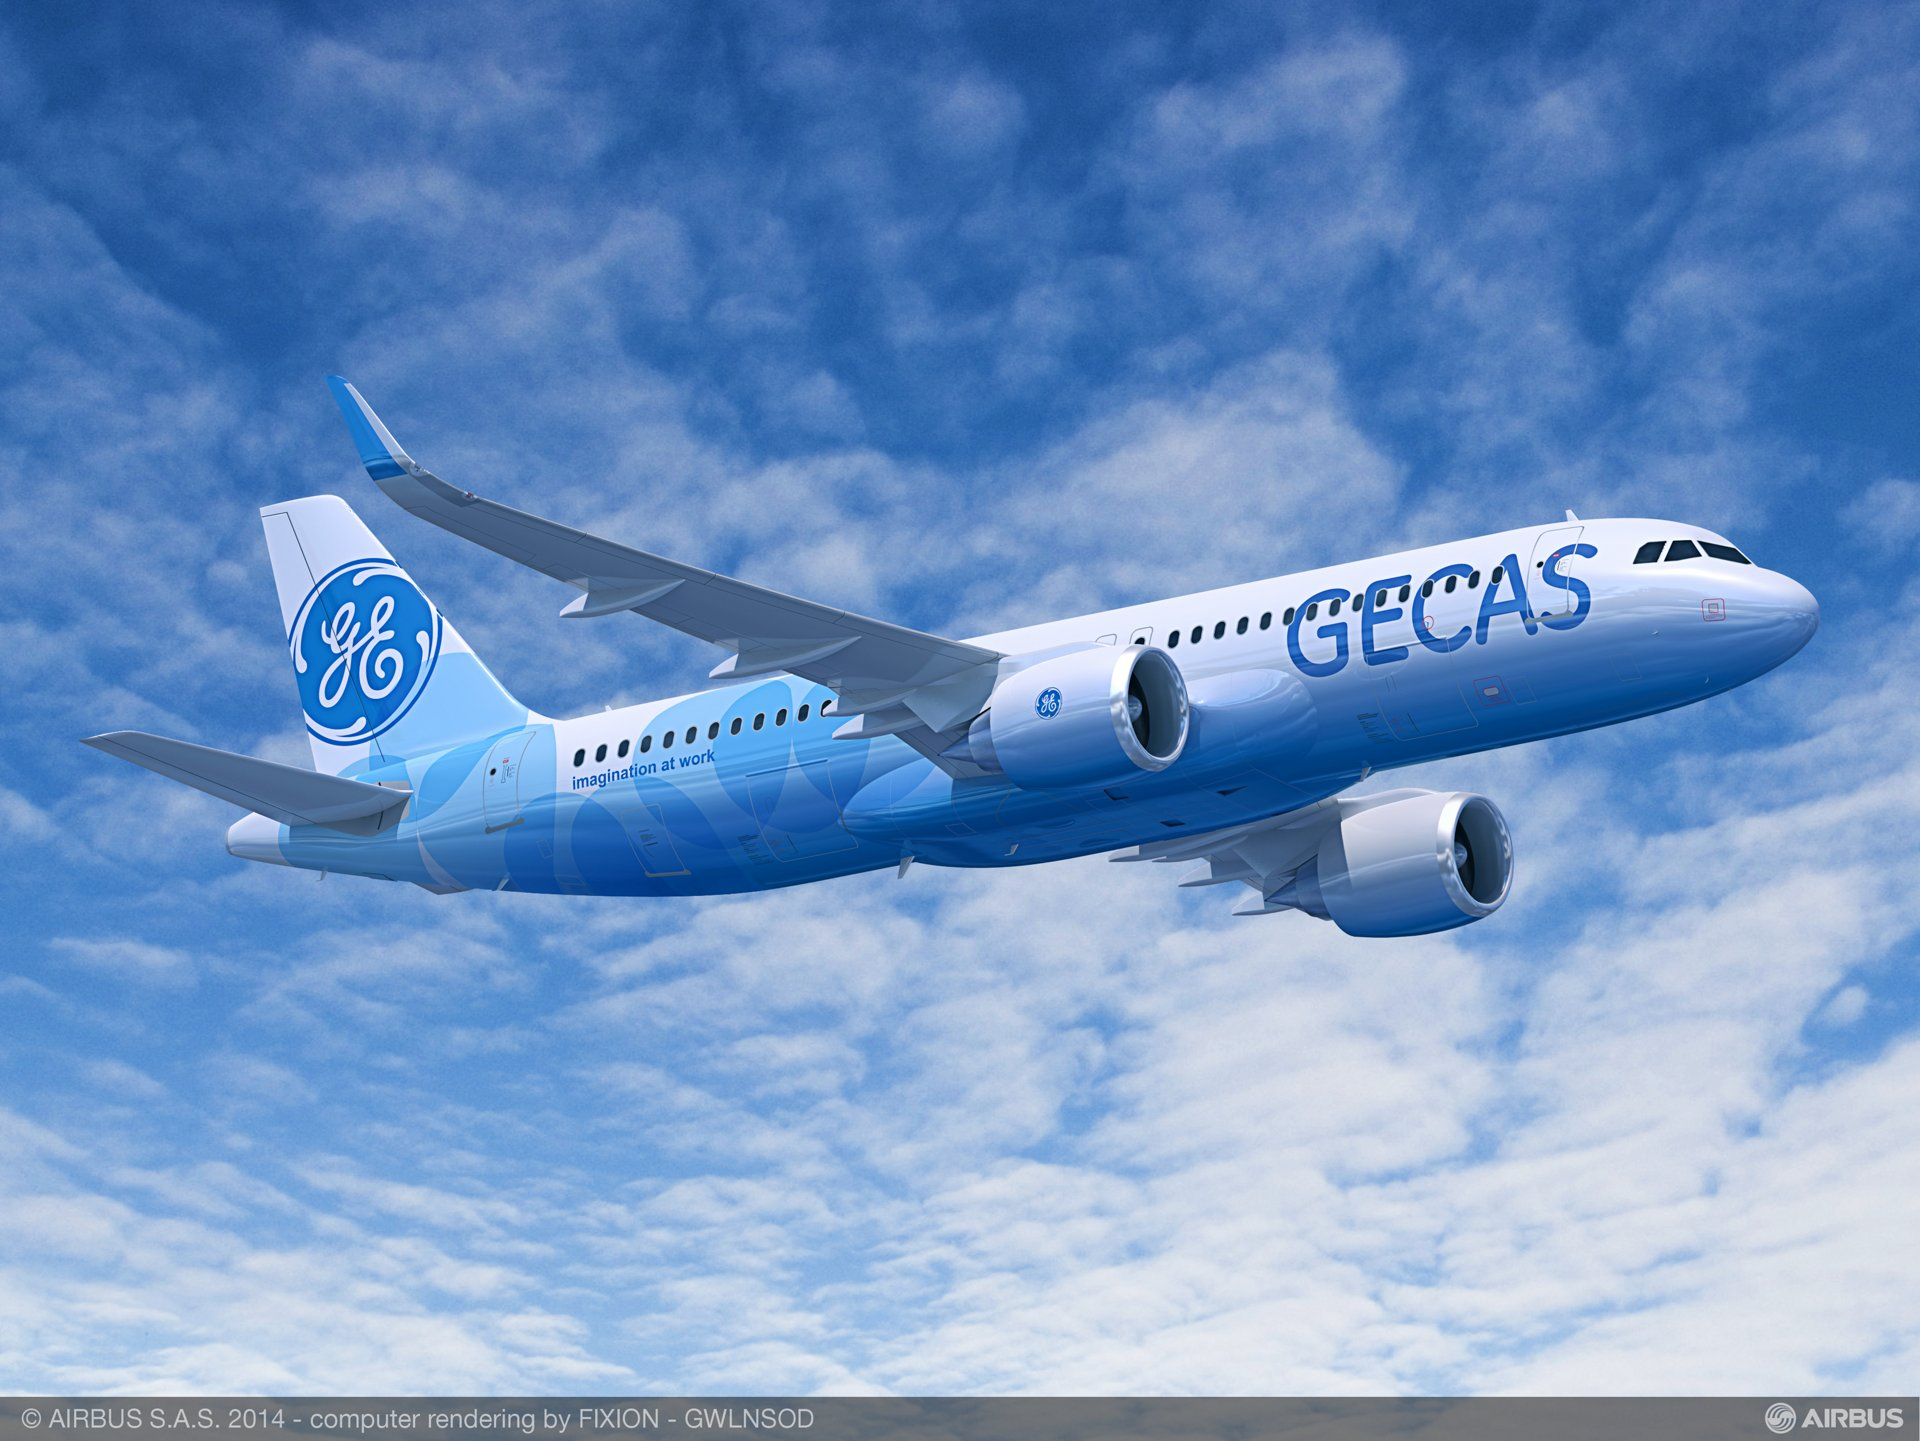 The aviation leasing and financing arm of General Electric – GE Capital Aviation Services (GECAS) – announced a firm order on 15 June 2015 for 60 A320neo (new engine option) Family aircraft during the 51st International Paris Air Show